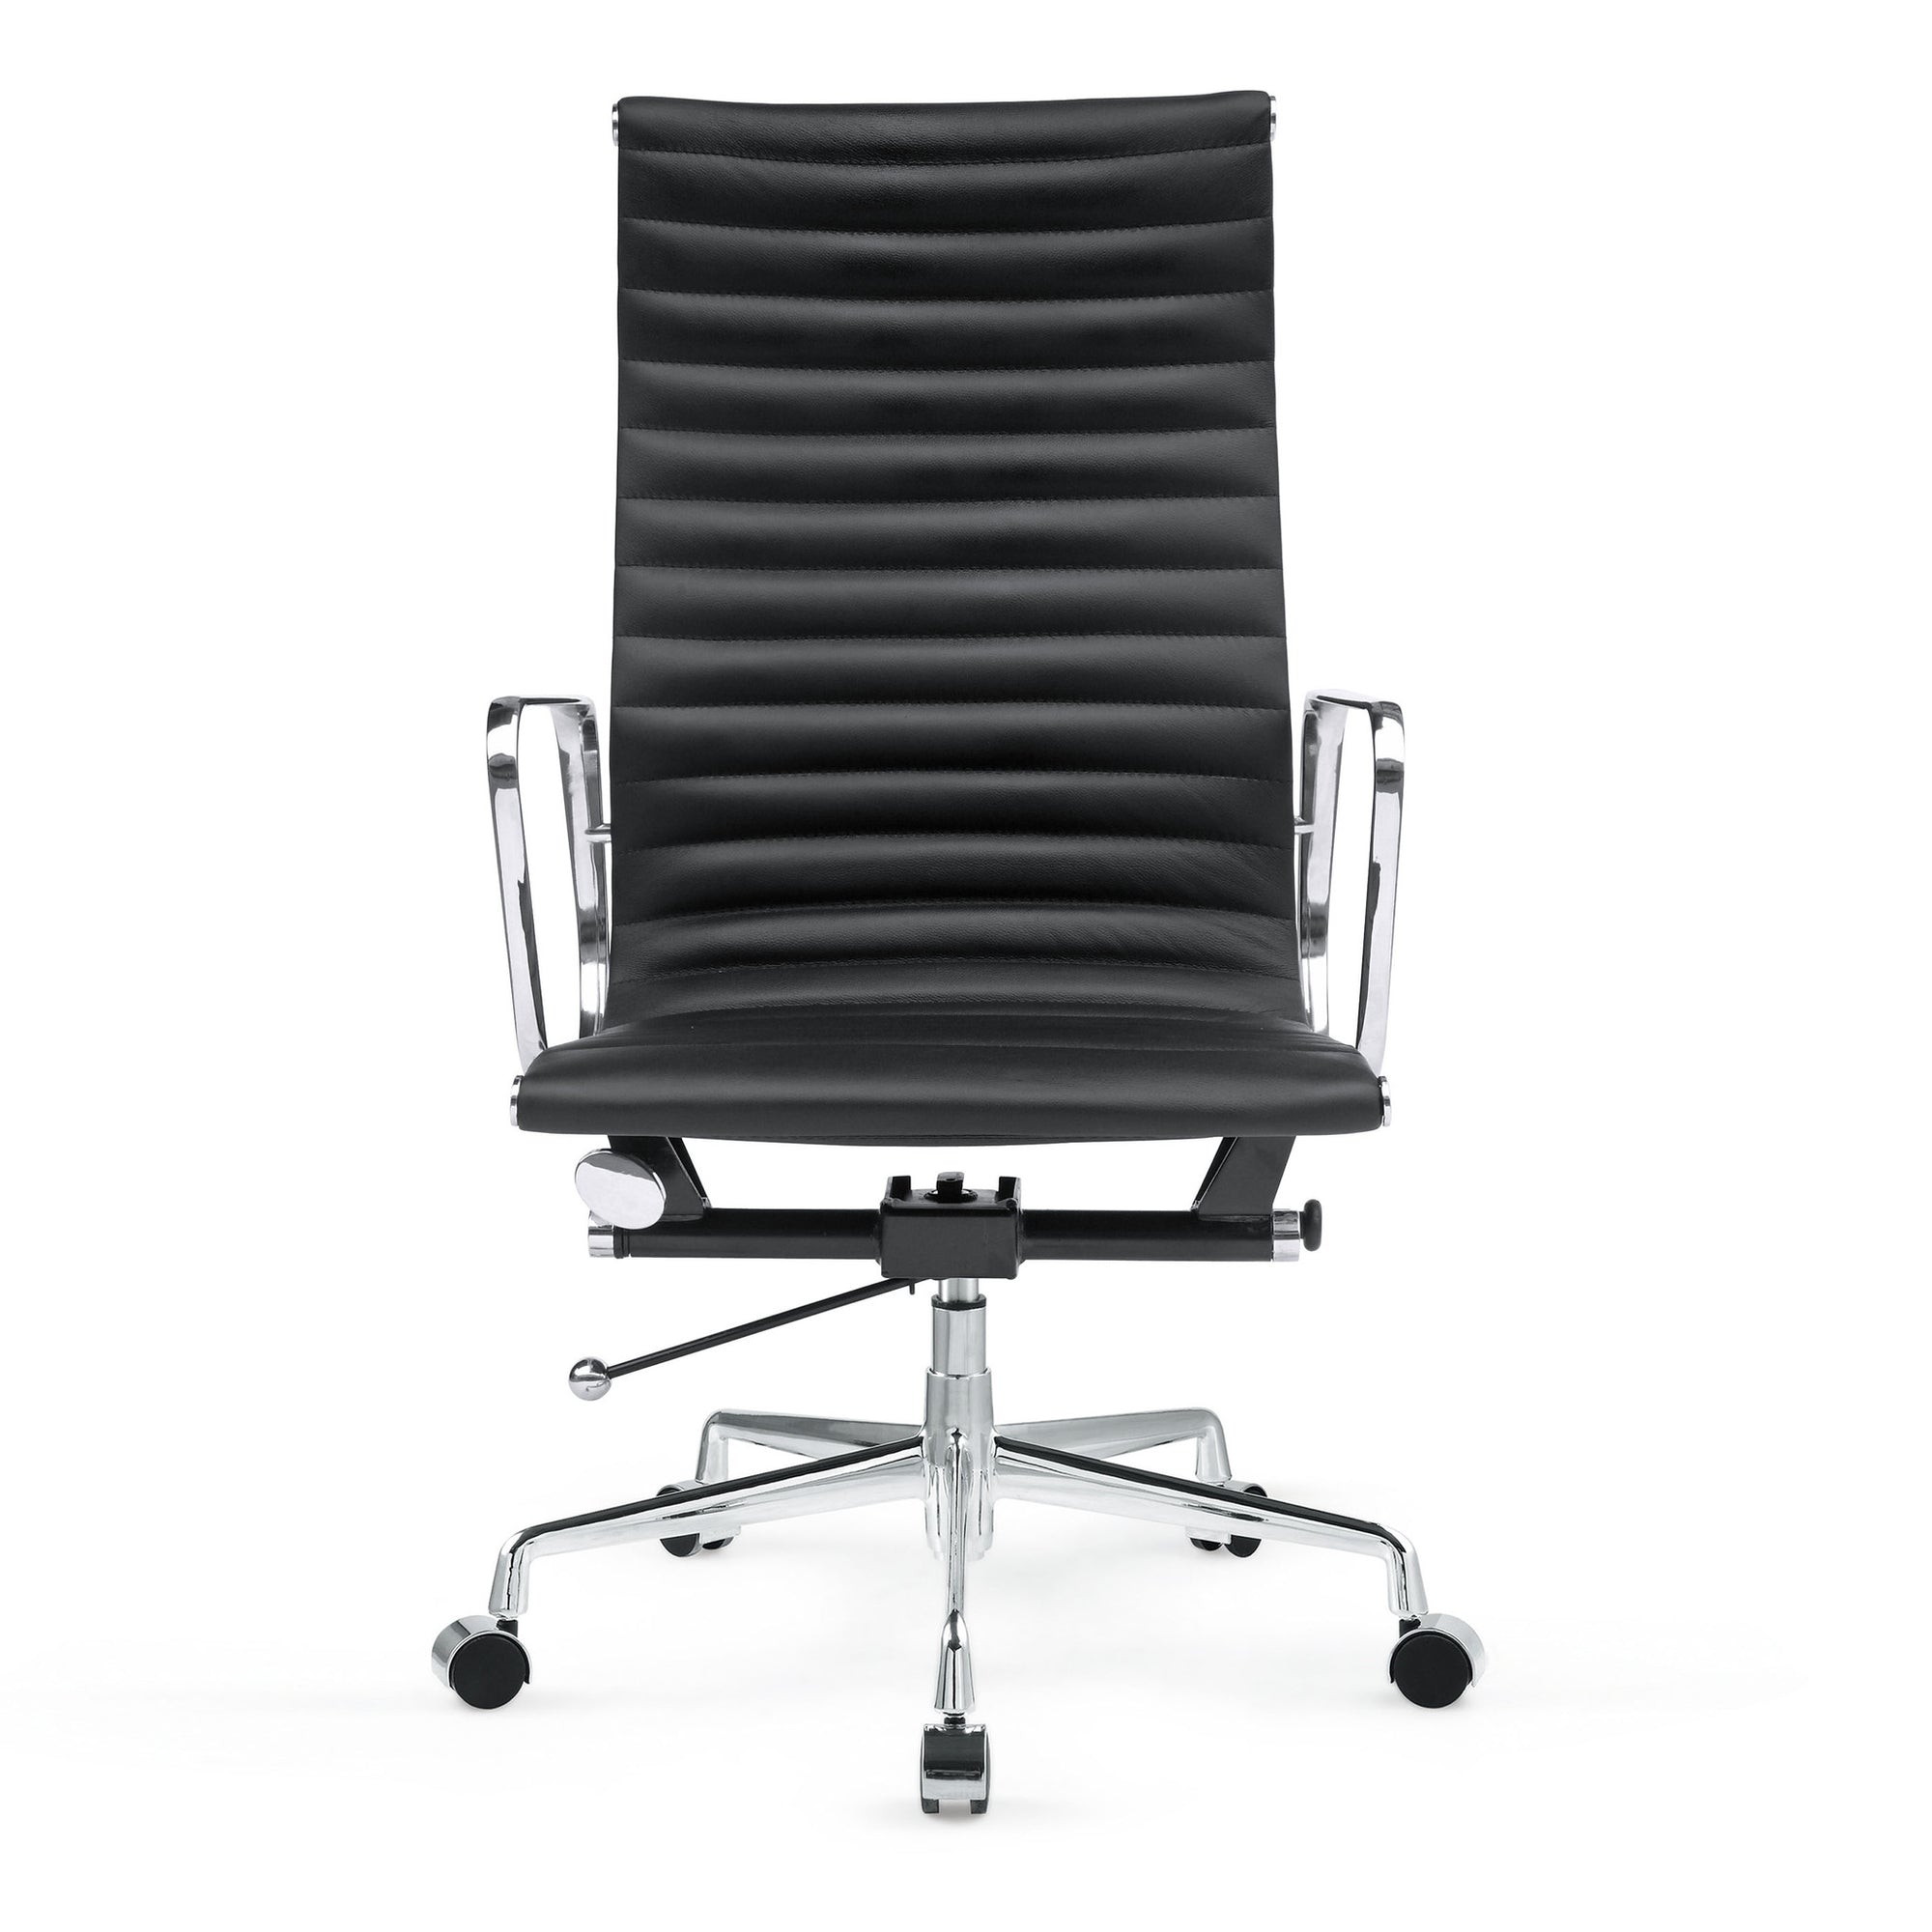 classic office chair. Classic Office Chair Simulated Leather CE00256p - Ebarza Classic Office Chair